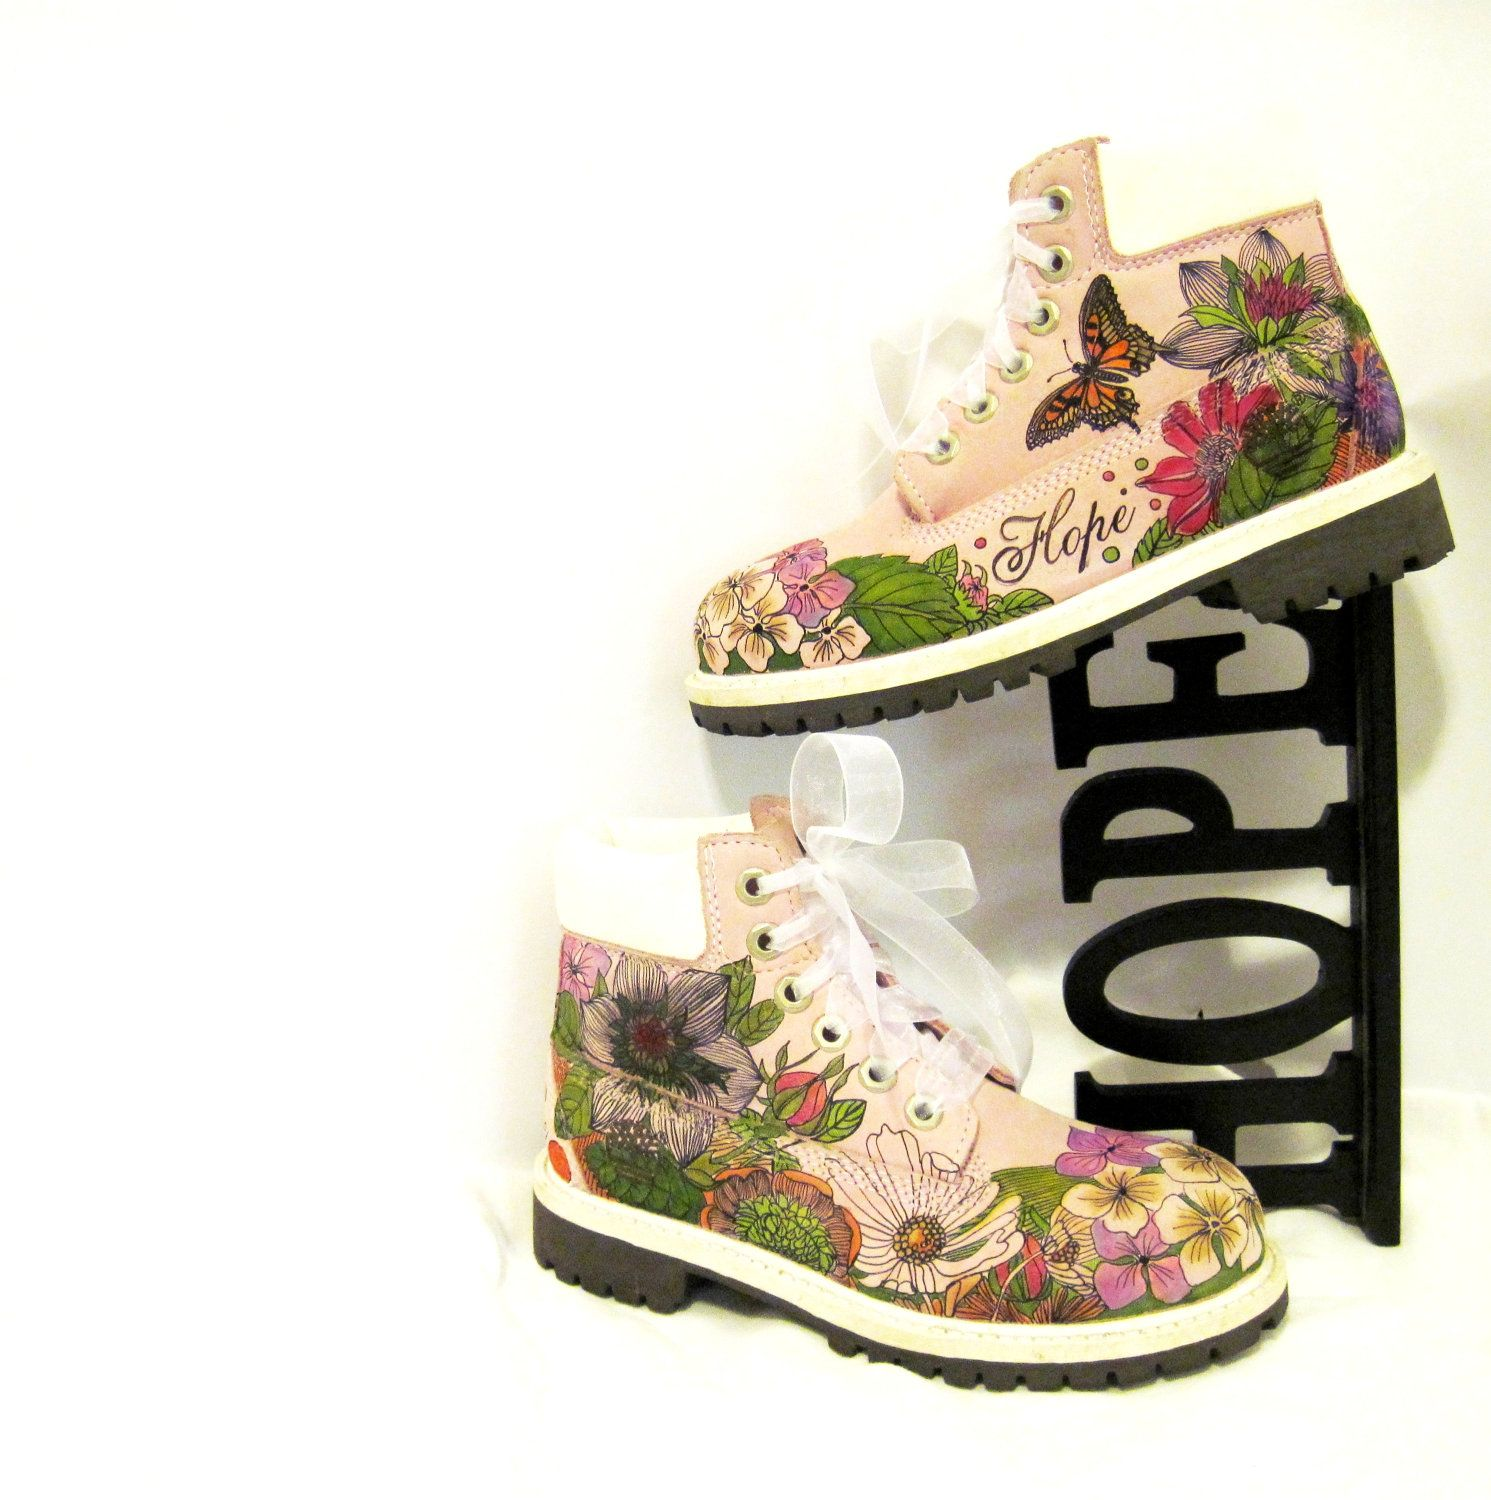 Kids boots hand painted Timberland faith hope love. $129.00